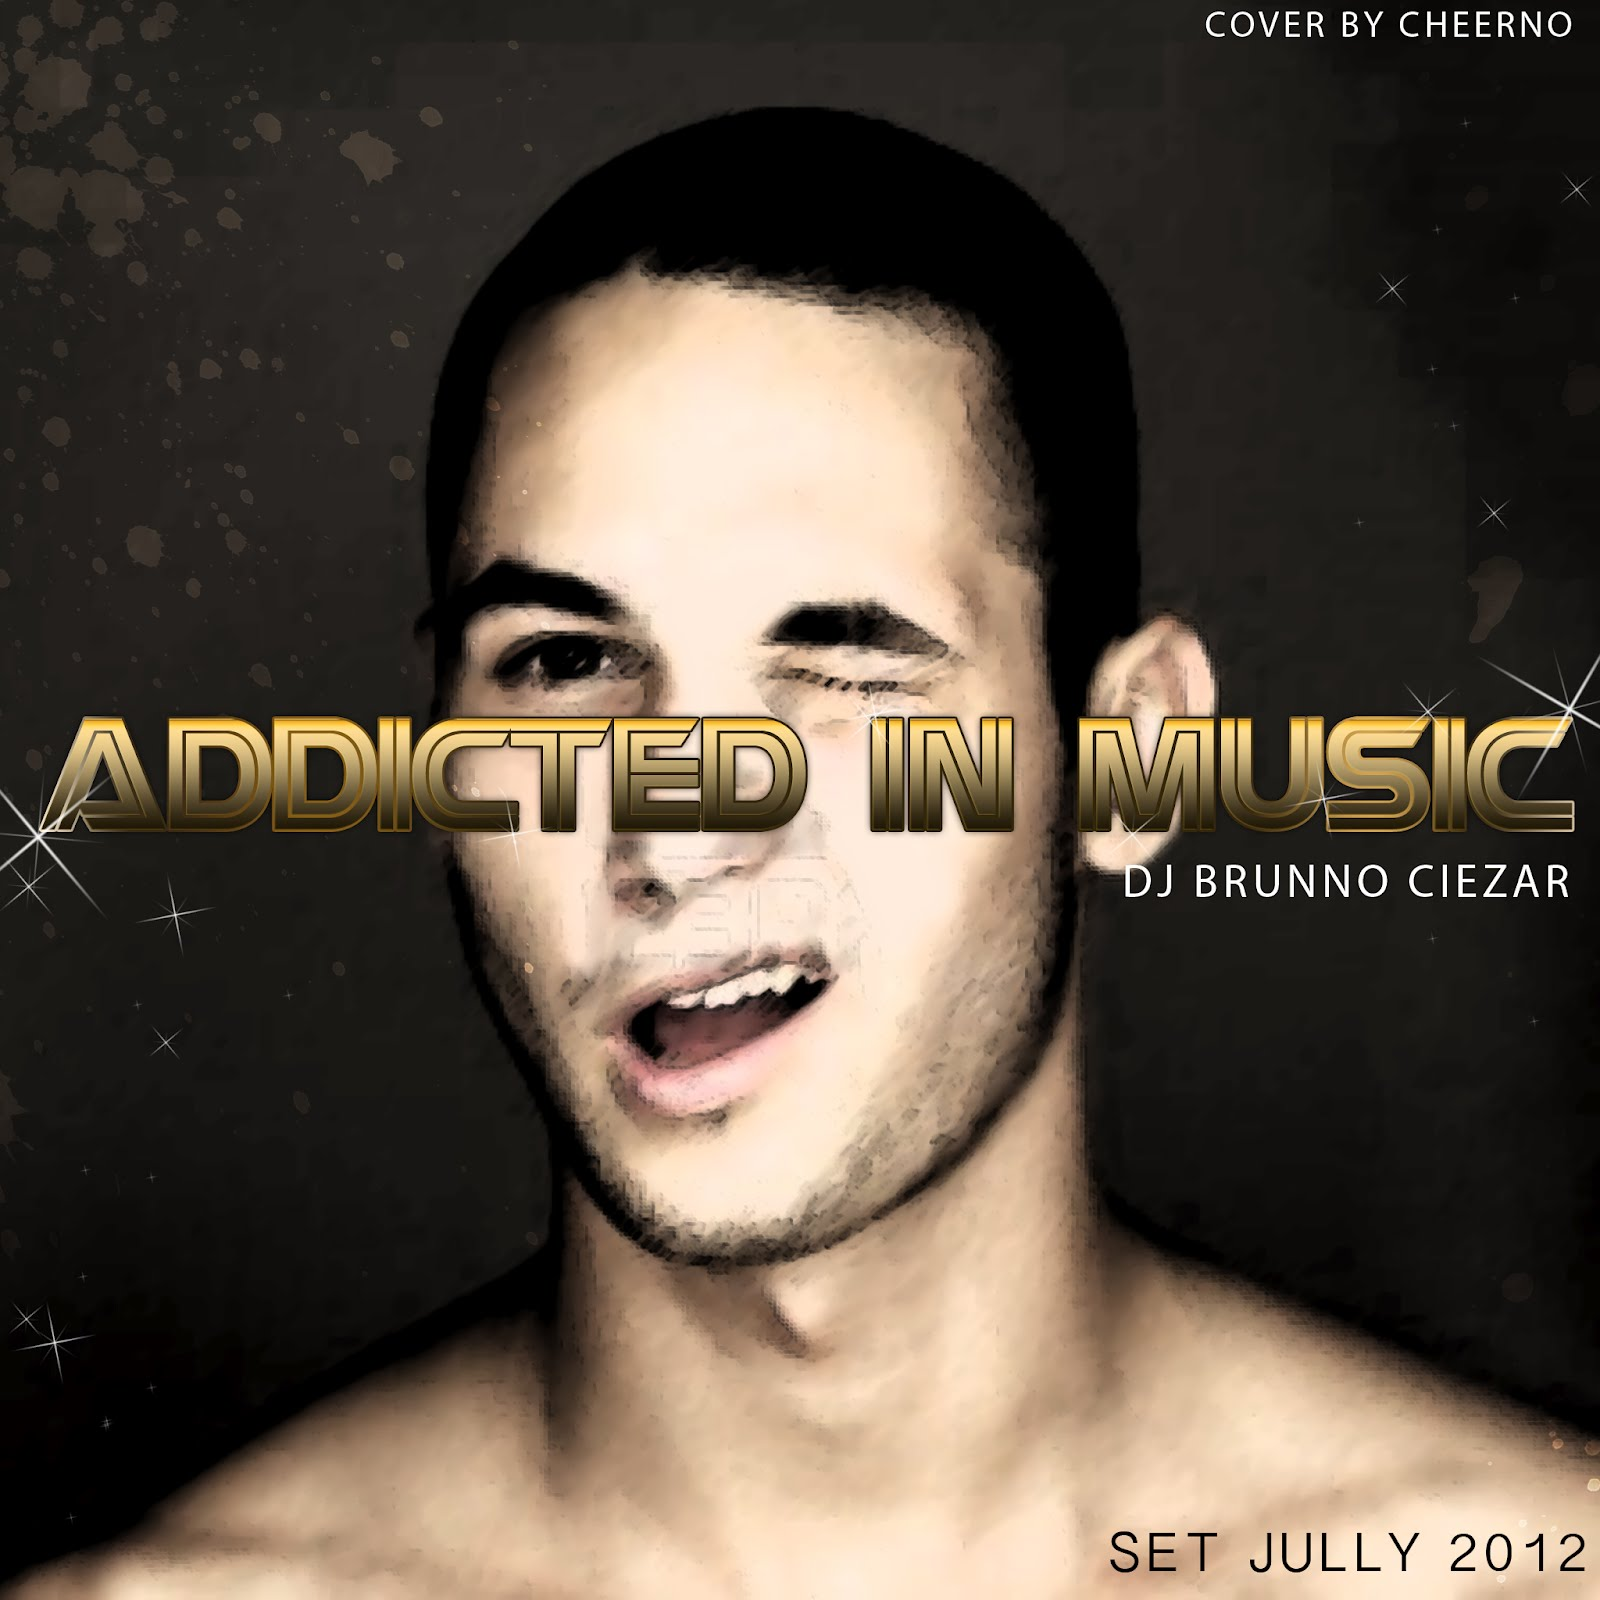 DJ BRUNNO CIEZAR - ADDICTED IN MUSIC